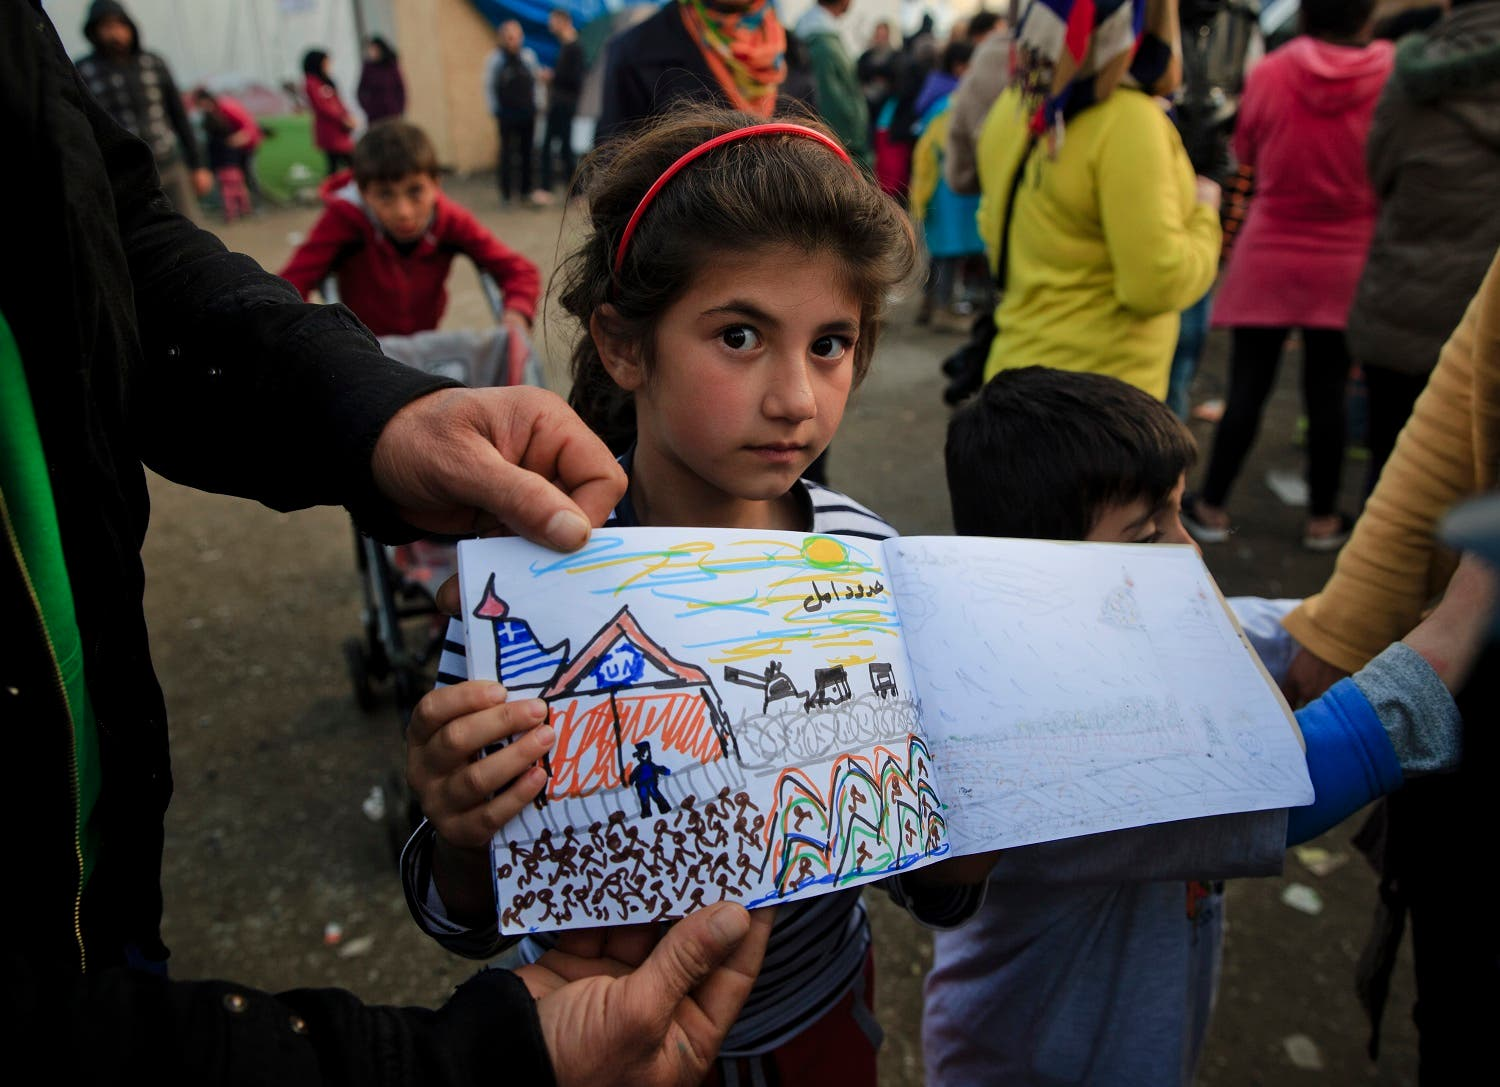 Shaharzad Hassan, 8 year-old from the Syrian city of Aleppo poses with a drawing she made at the northern Greek border station of Idomeni, Friday, March 11, 2016. At an overcrowded refugee camp on the Greek-Macedonian border, 8-year-old Shaharzad Hassan draws pictures of the harrowing events in her life over the past 18 months: Pictures of death in her home town of Aleppo, Syria, and her perilous journey to Europe. The title this drawing seen top right reads